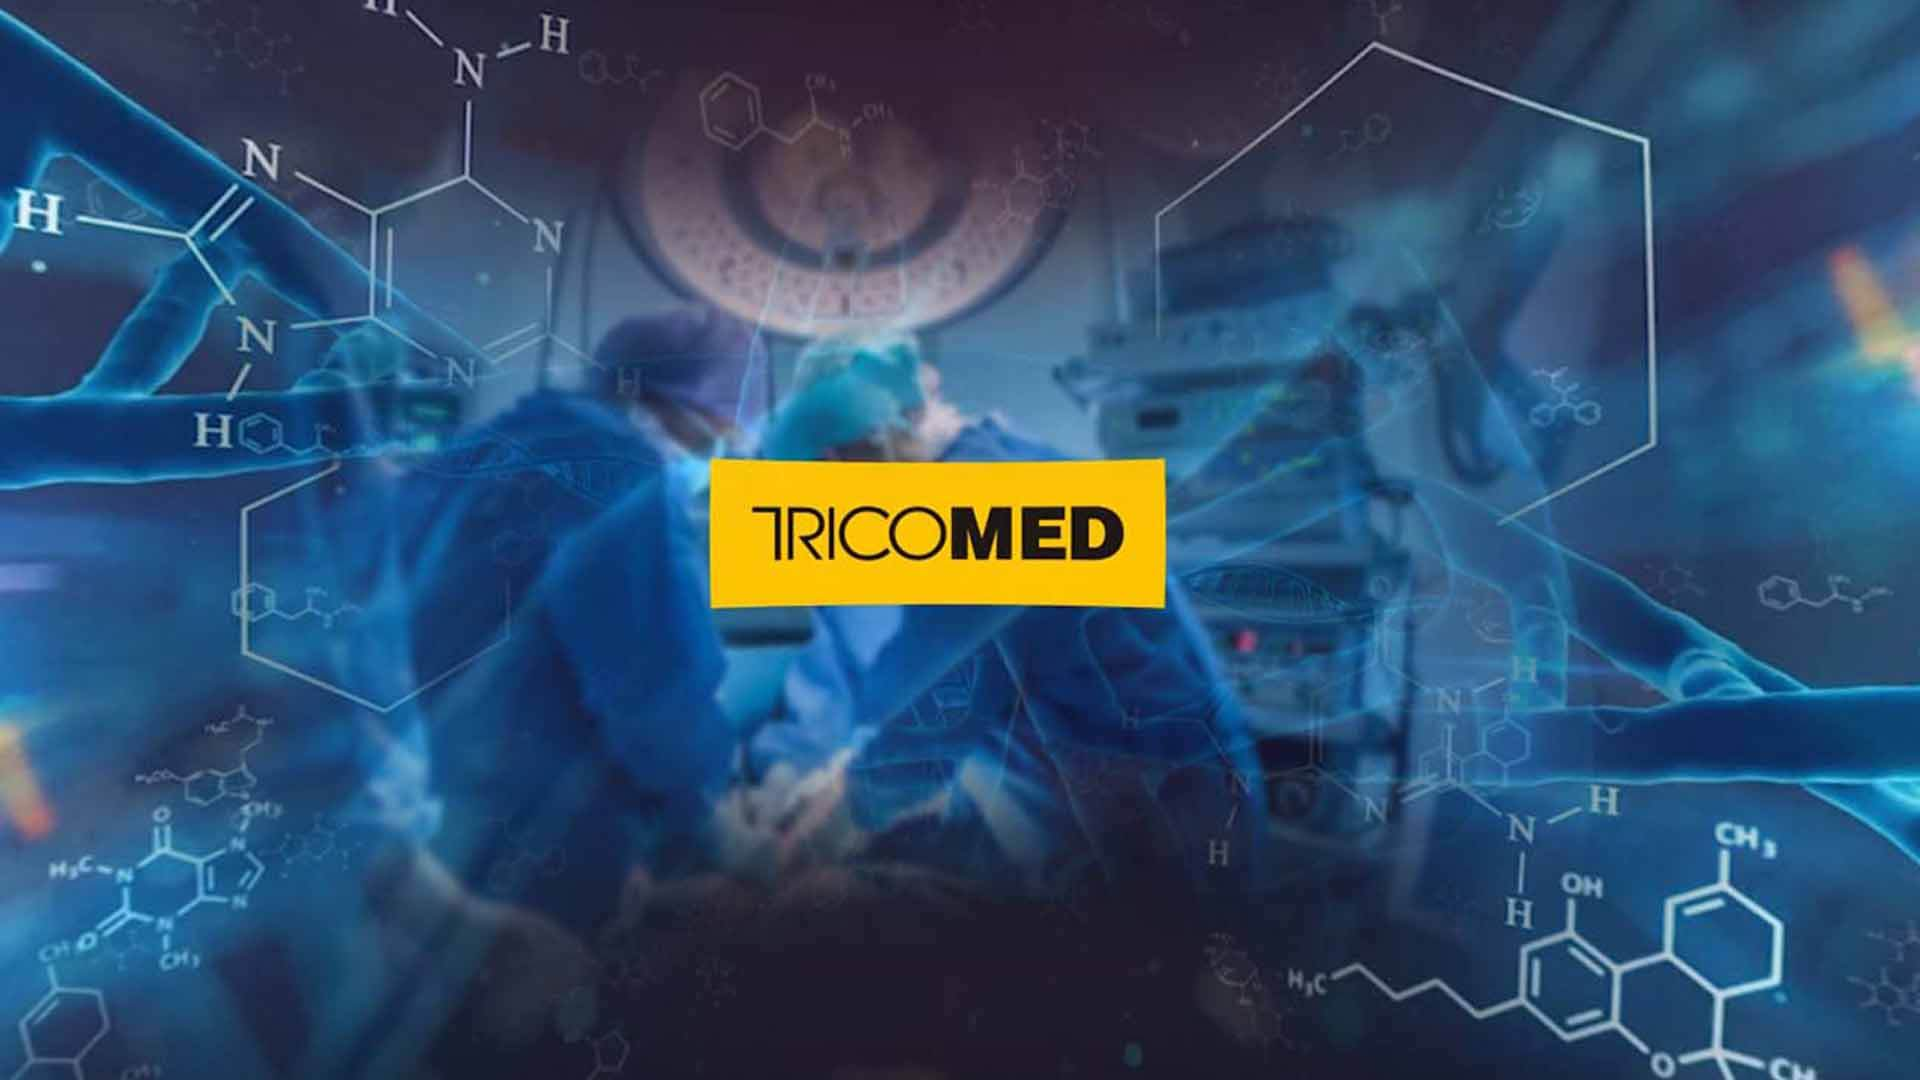 TRICOMED VR